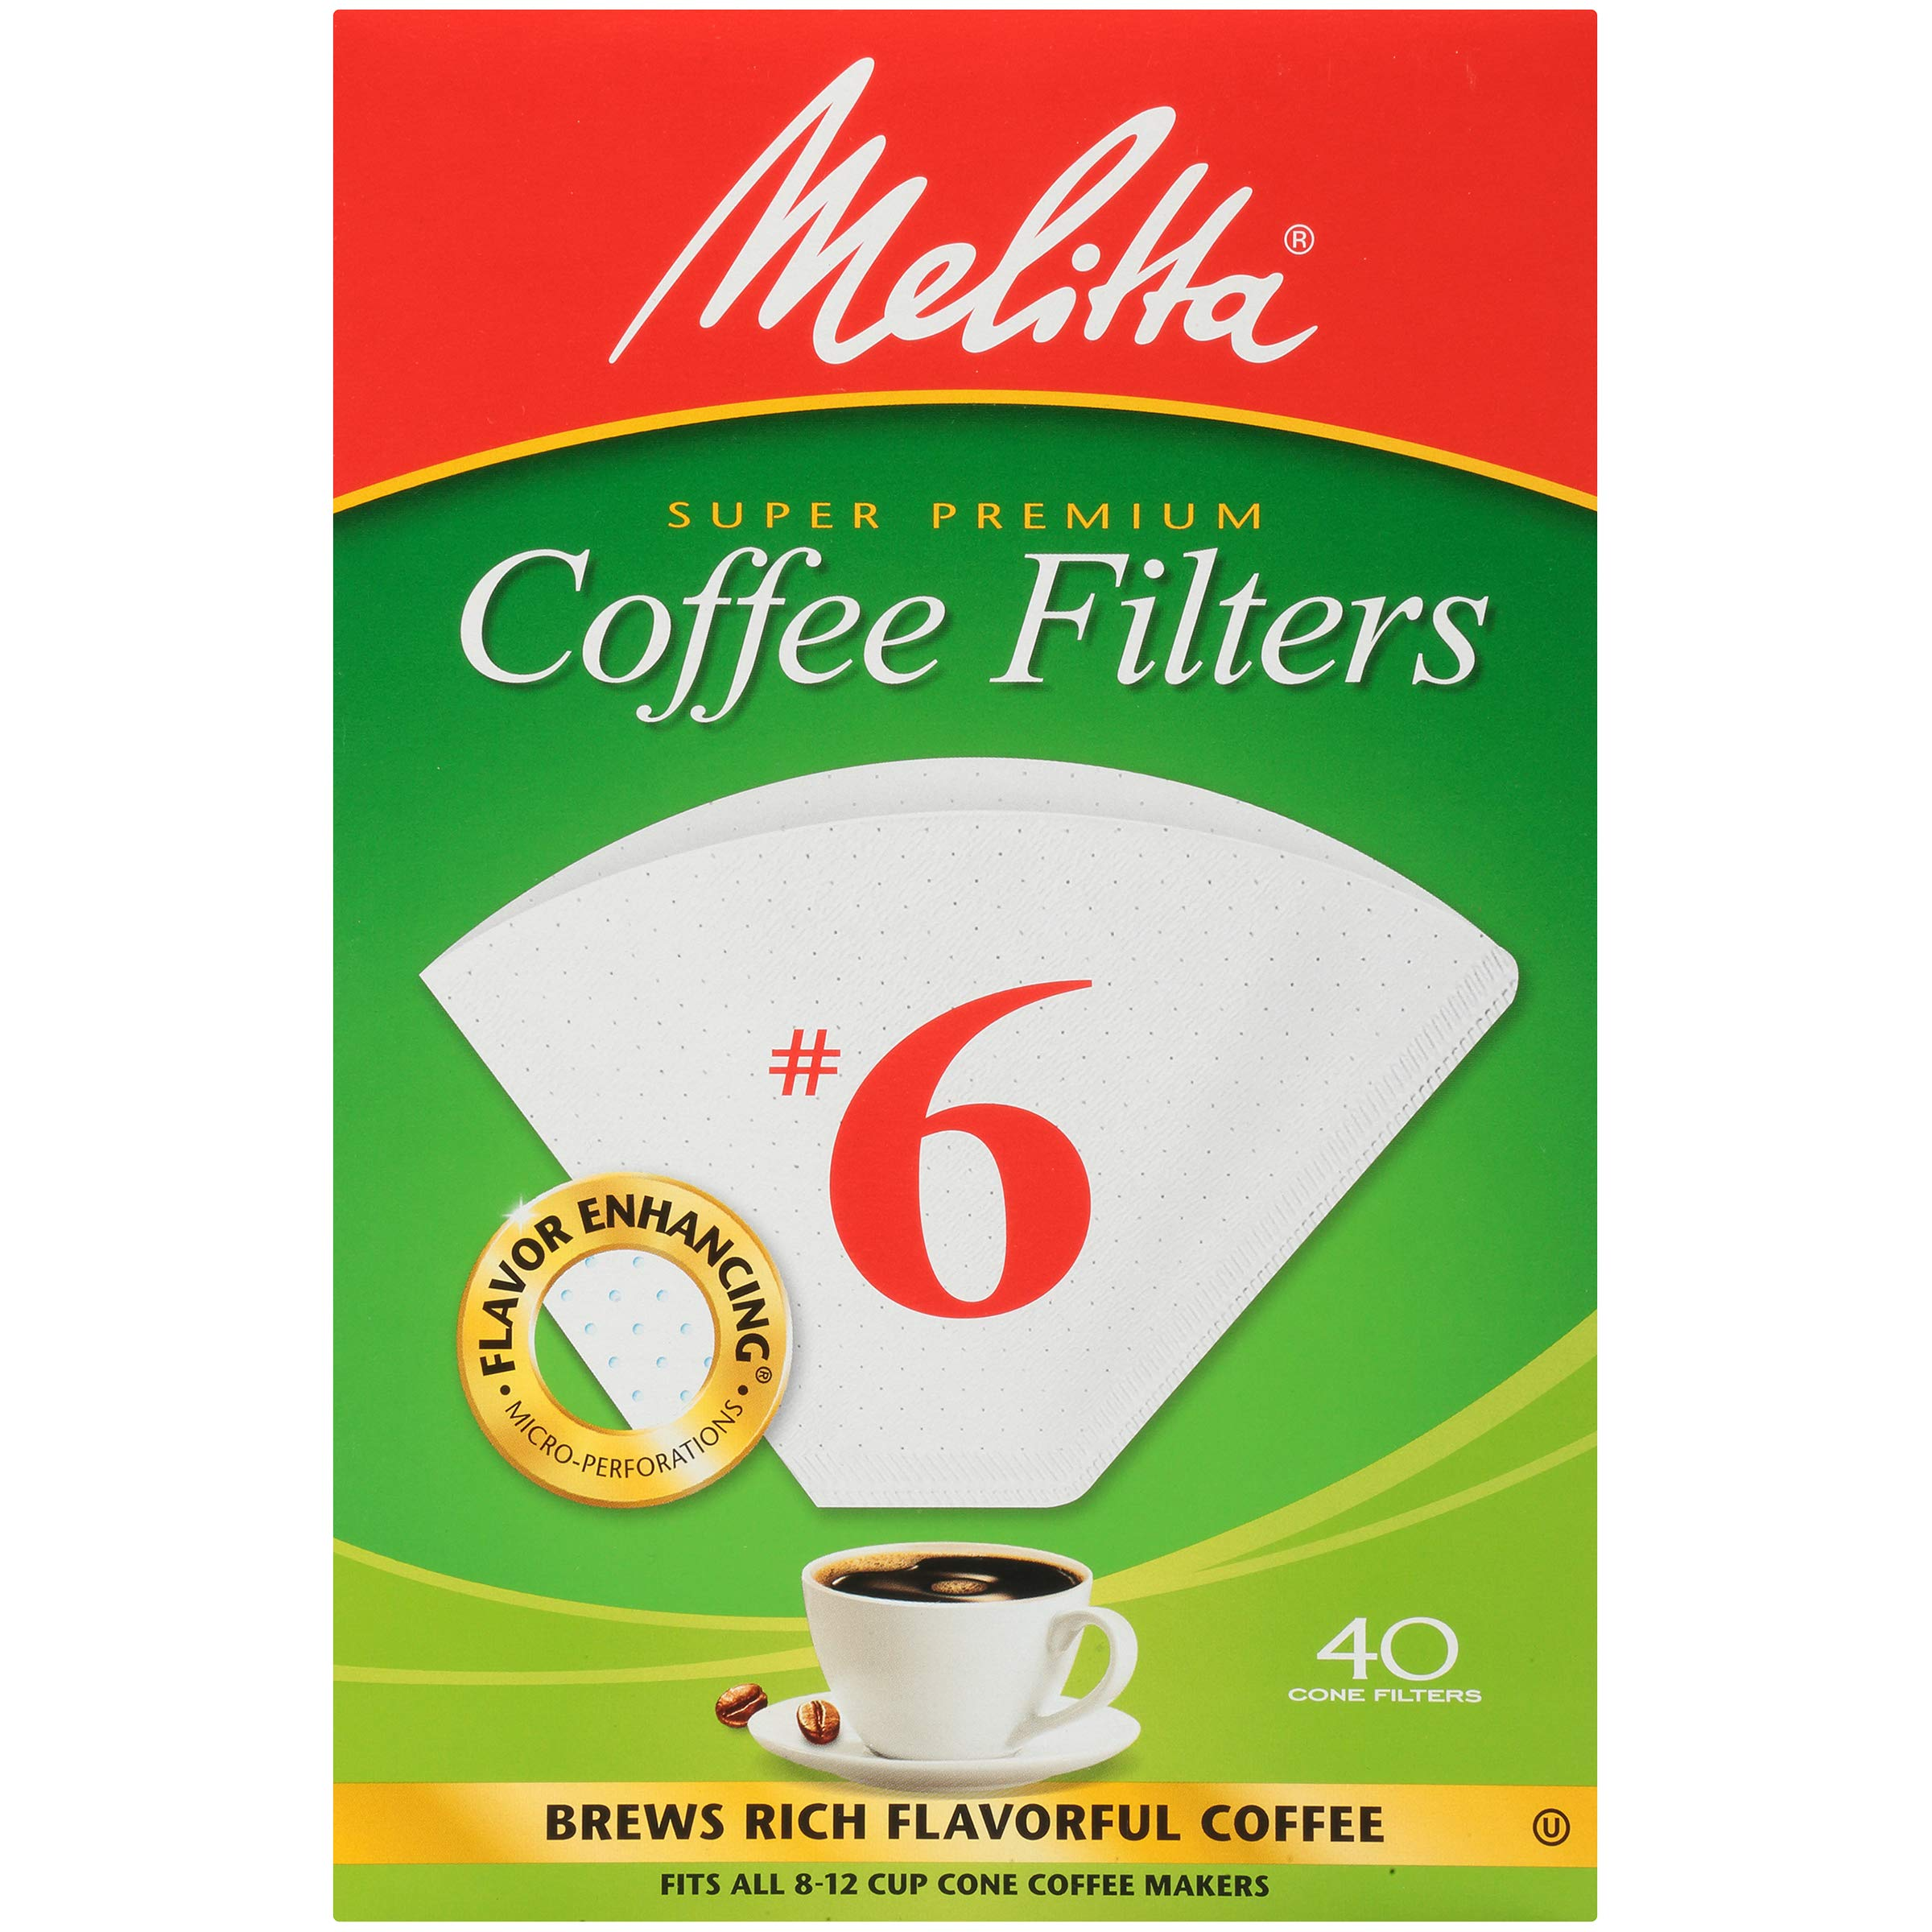 Melitta (626402C) #6 Super Premium Cone Coffee Filters, White, 40 Count (Pack of 12)